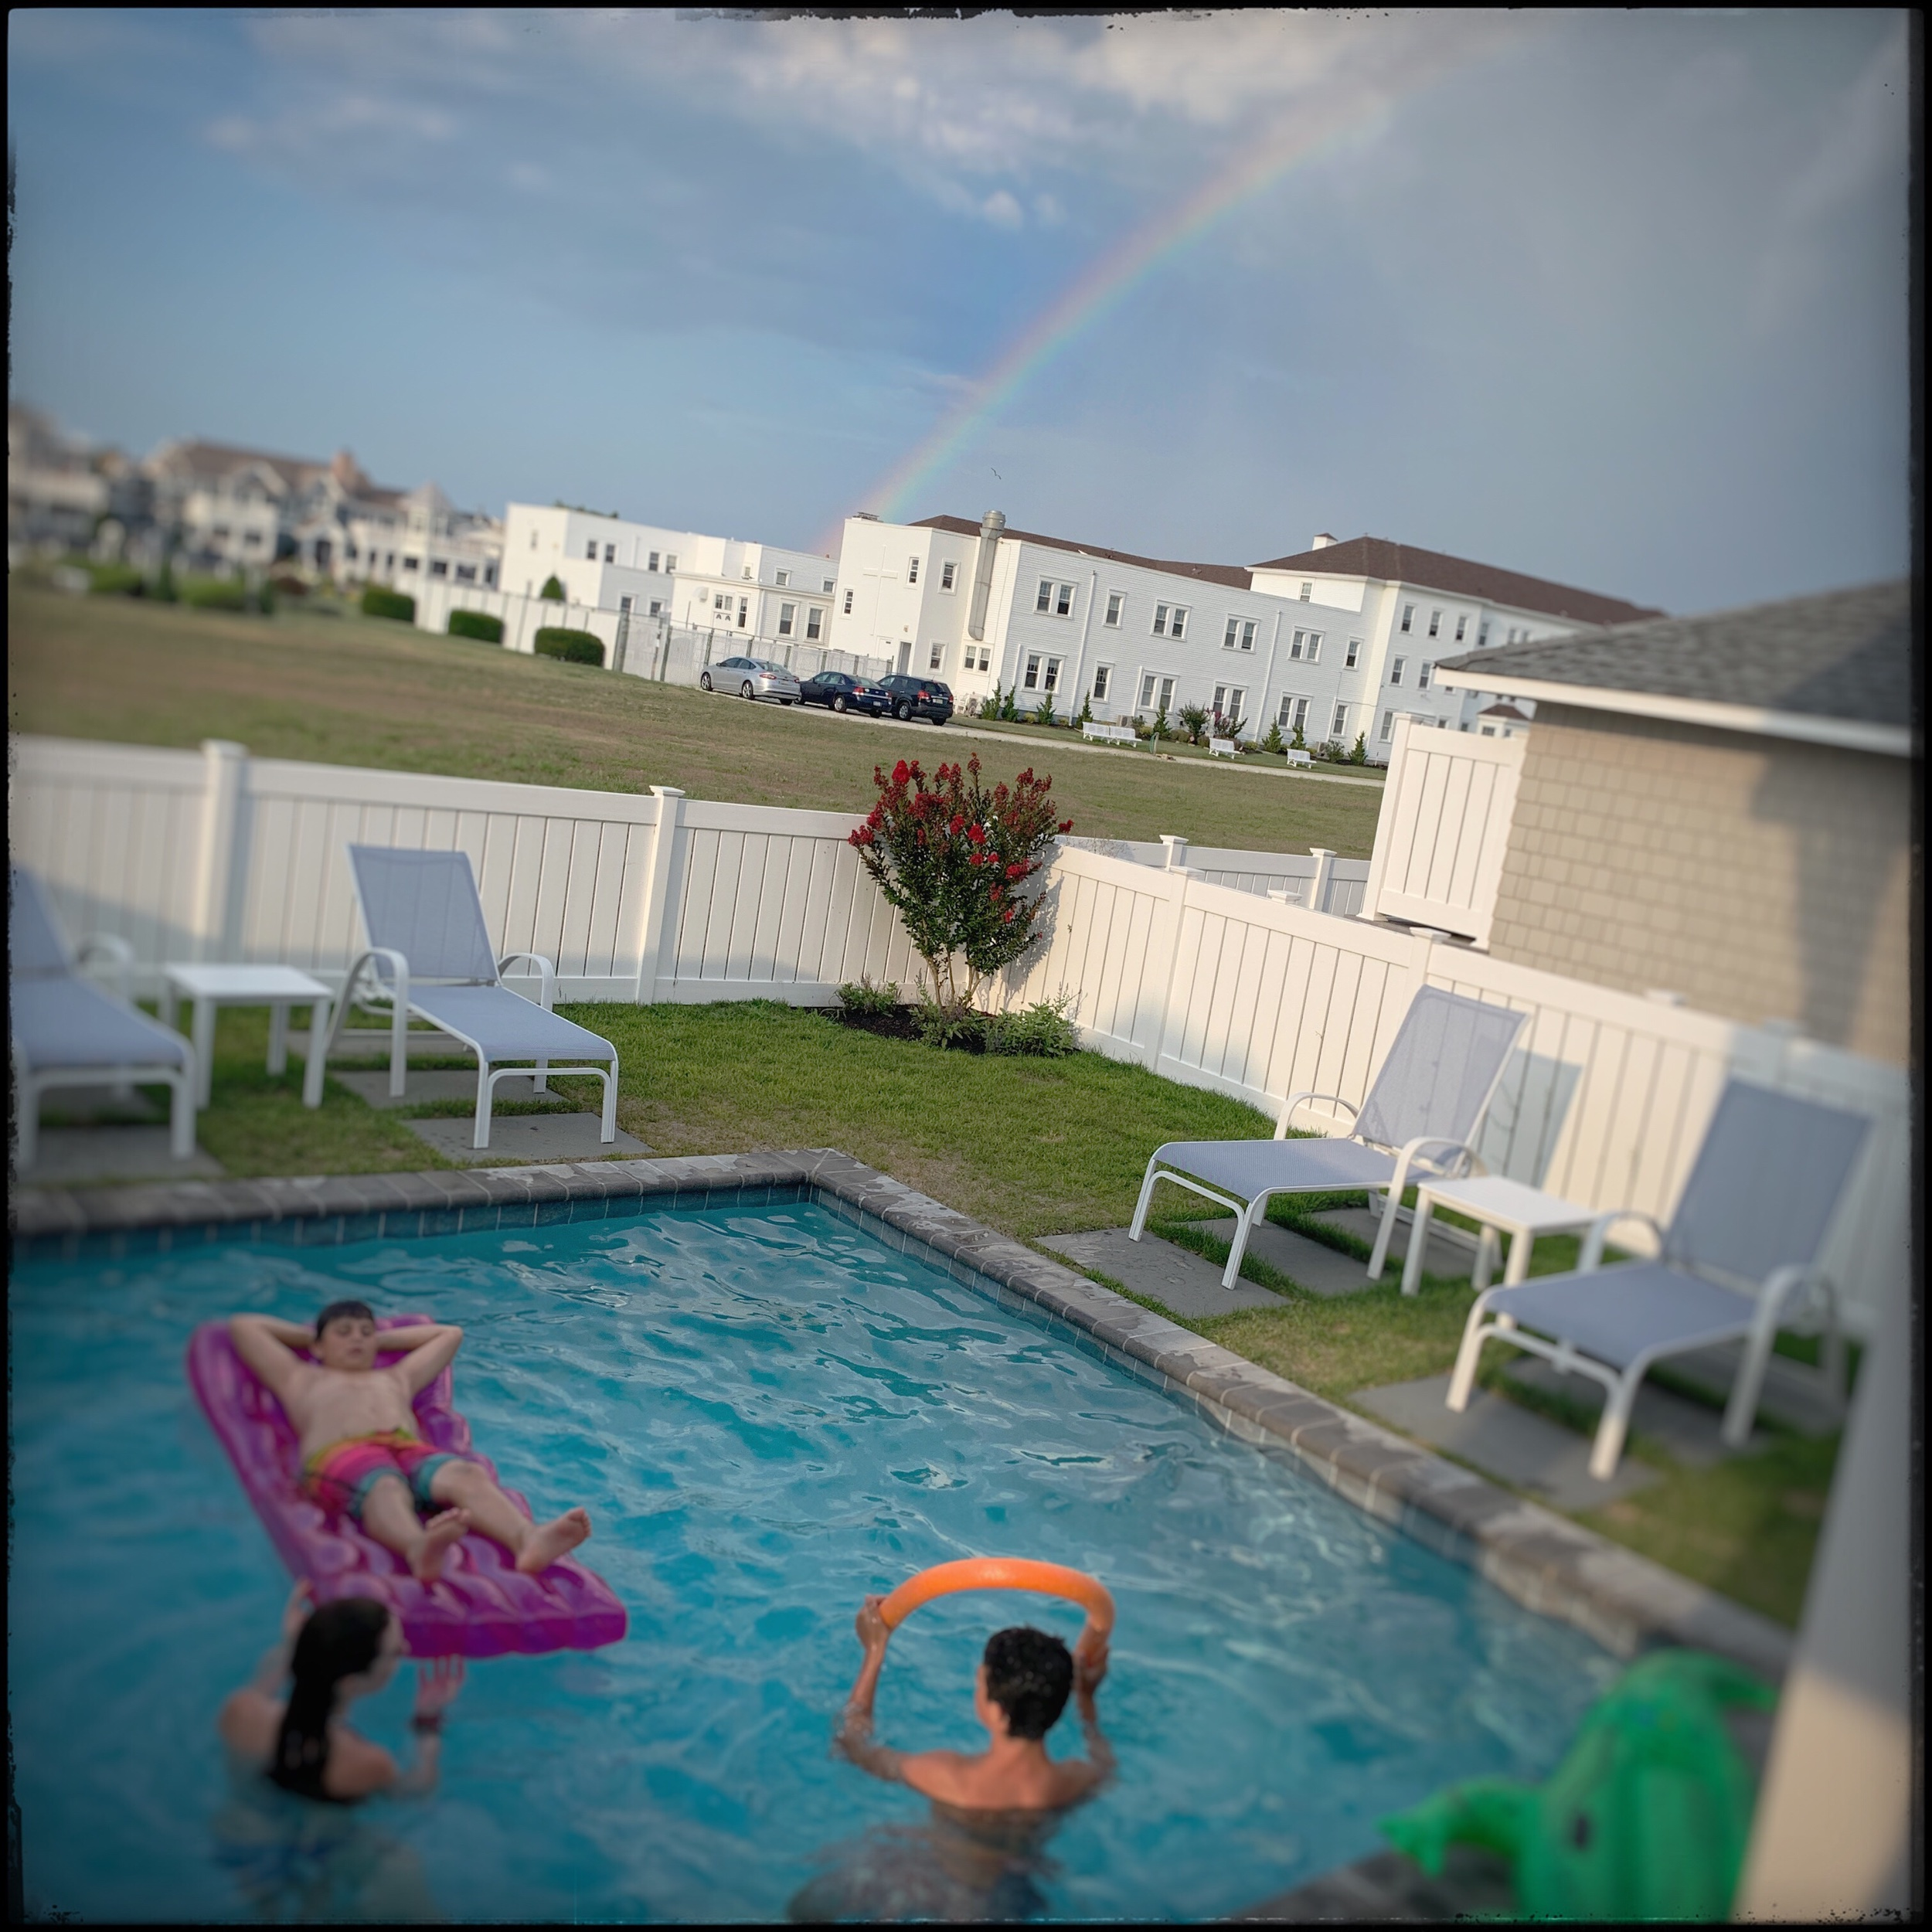 pool, convent, rainbow   ~  Stone Harbor, NJ (embiggenable) • iPhone